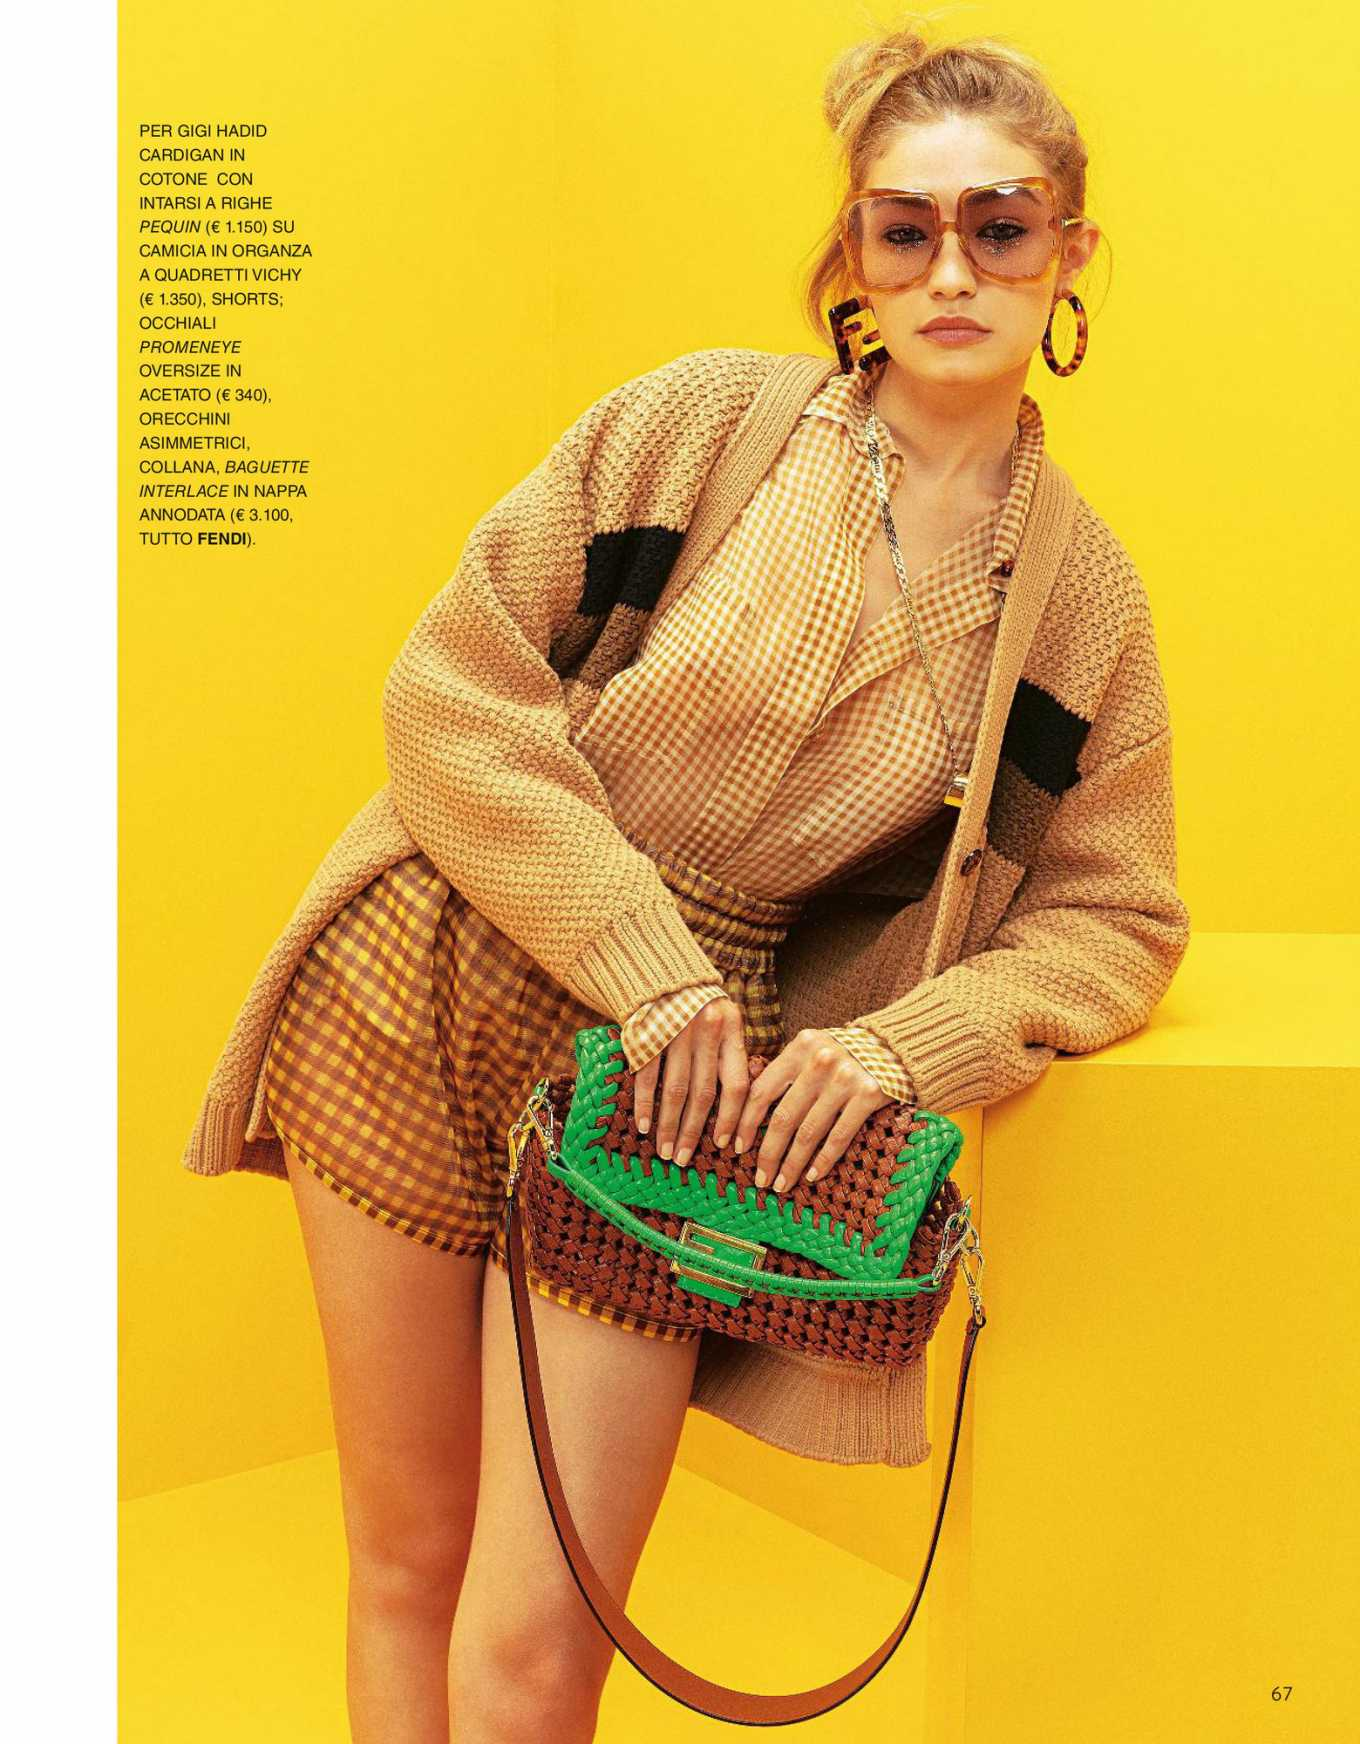 Gigi Hadid in Grazia Italy Magazine - April 2020